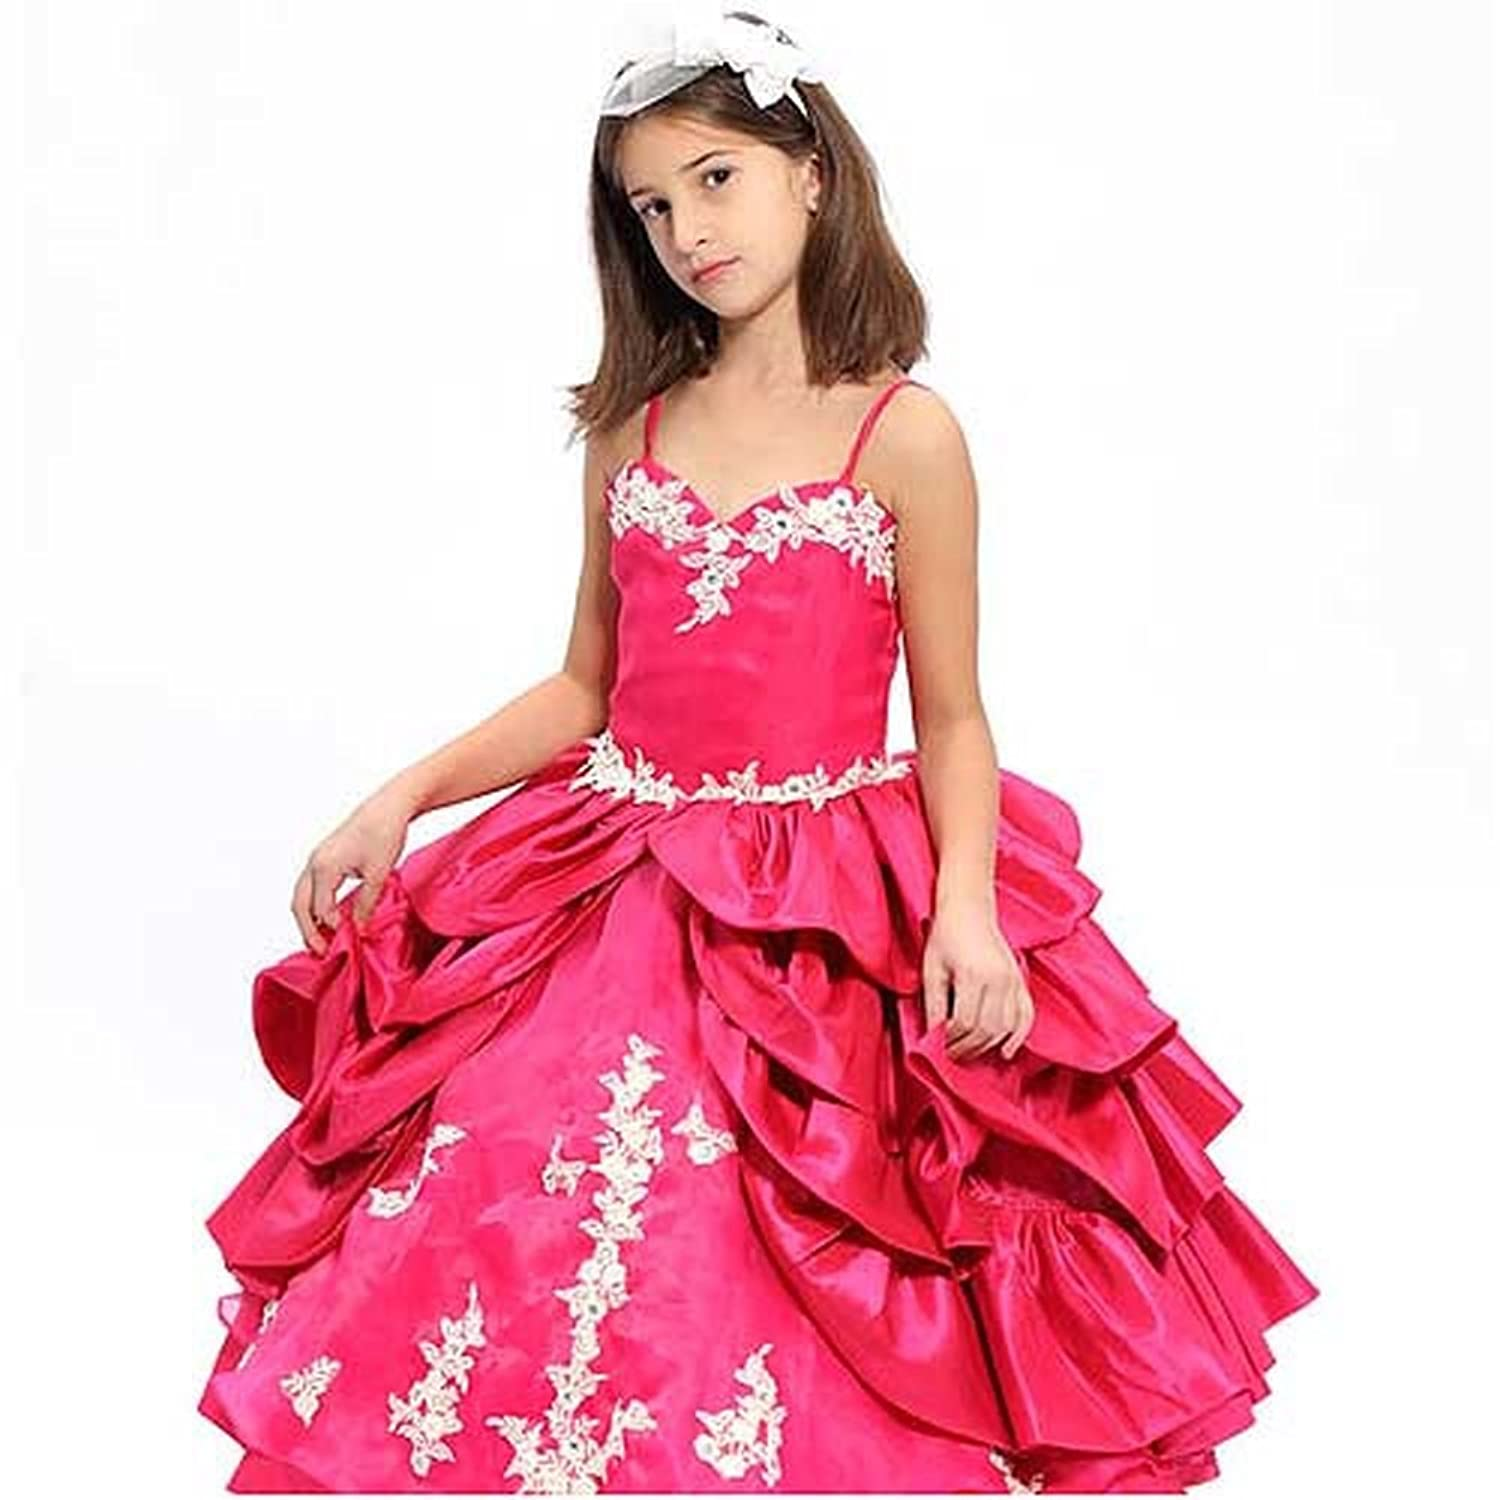 Designer Girls Clothing-size 4-14 Designer Fuchsia Jeweled